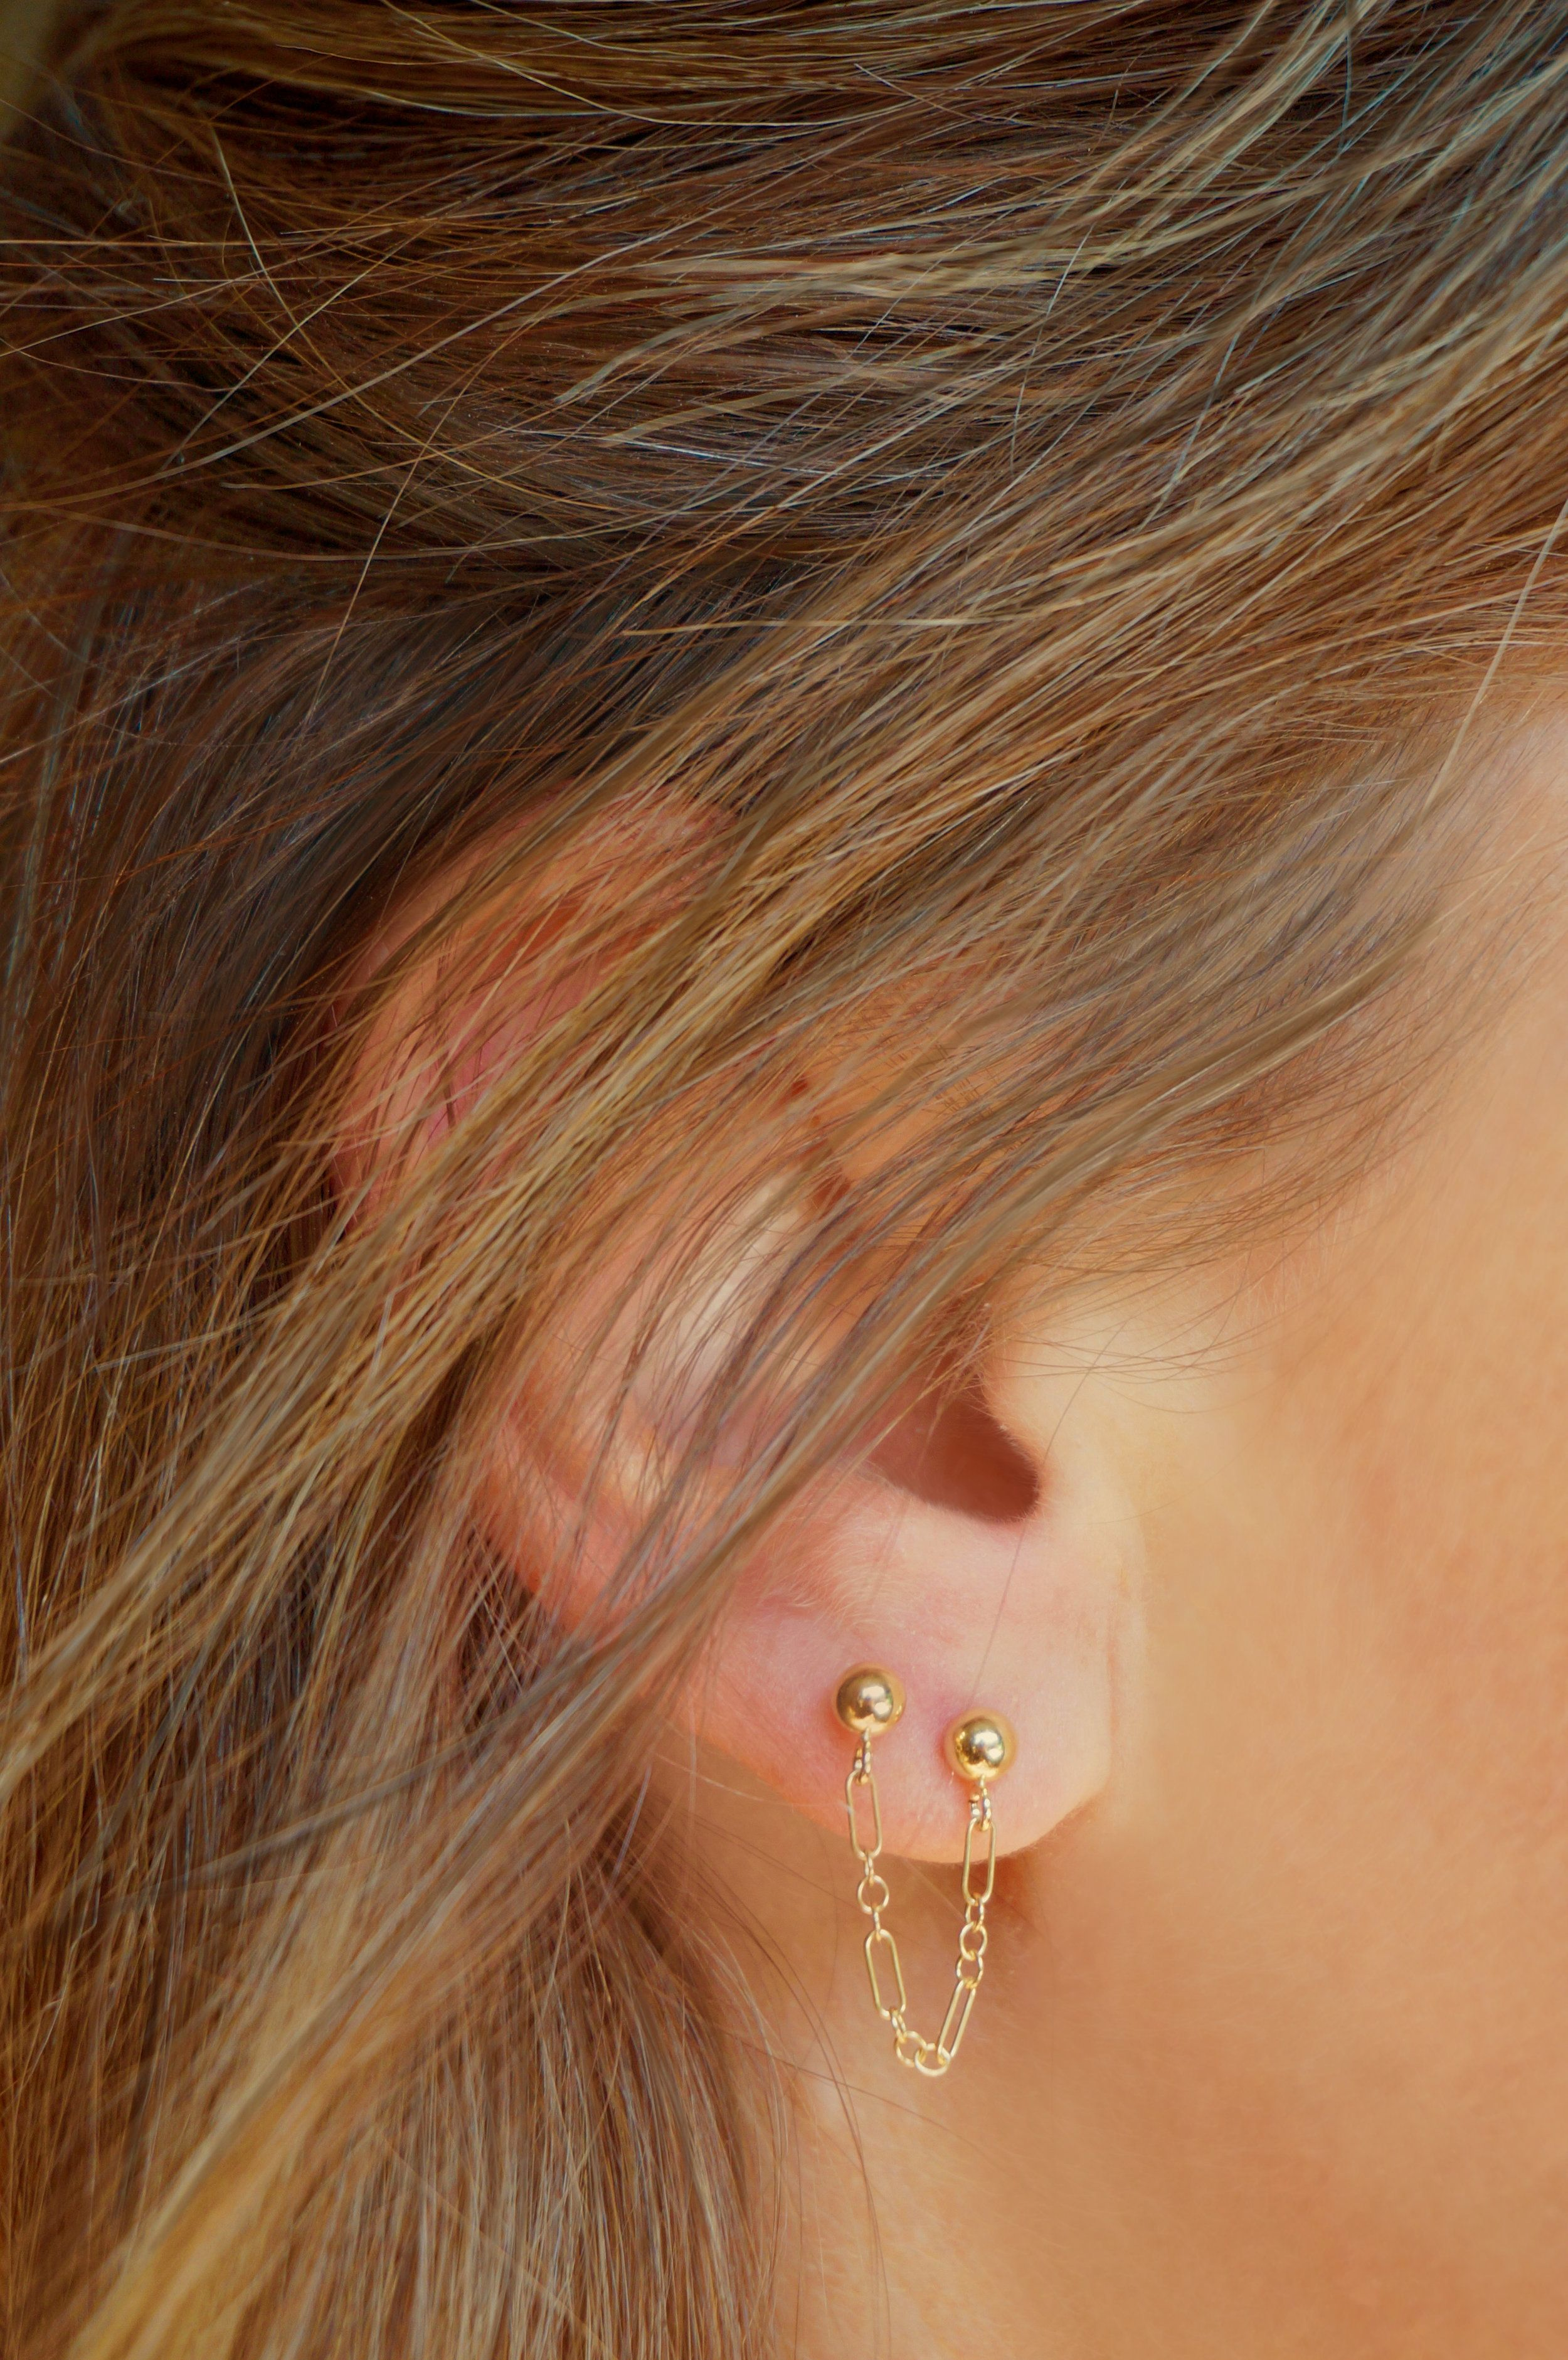 Our Chloe Earrings Connect One Earlobe Or Cartilage Piercing To